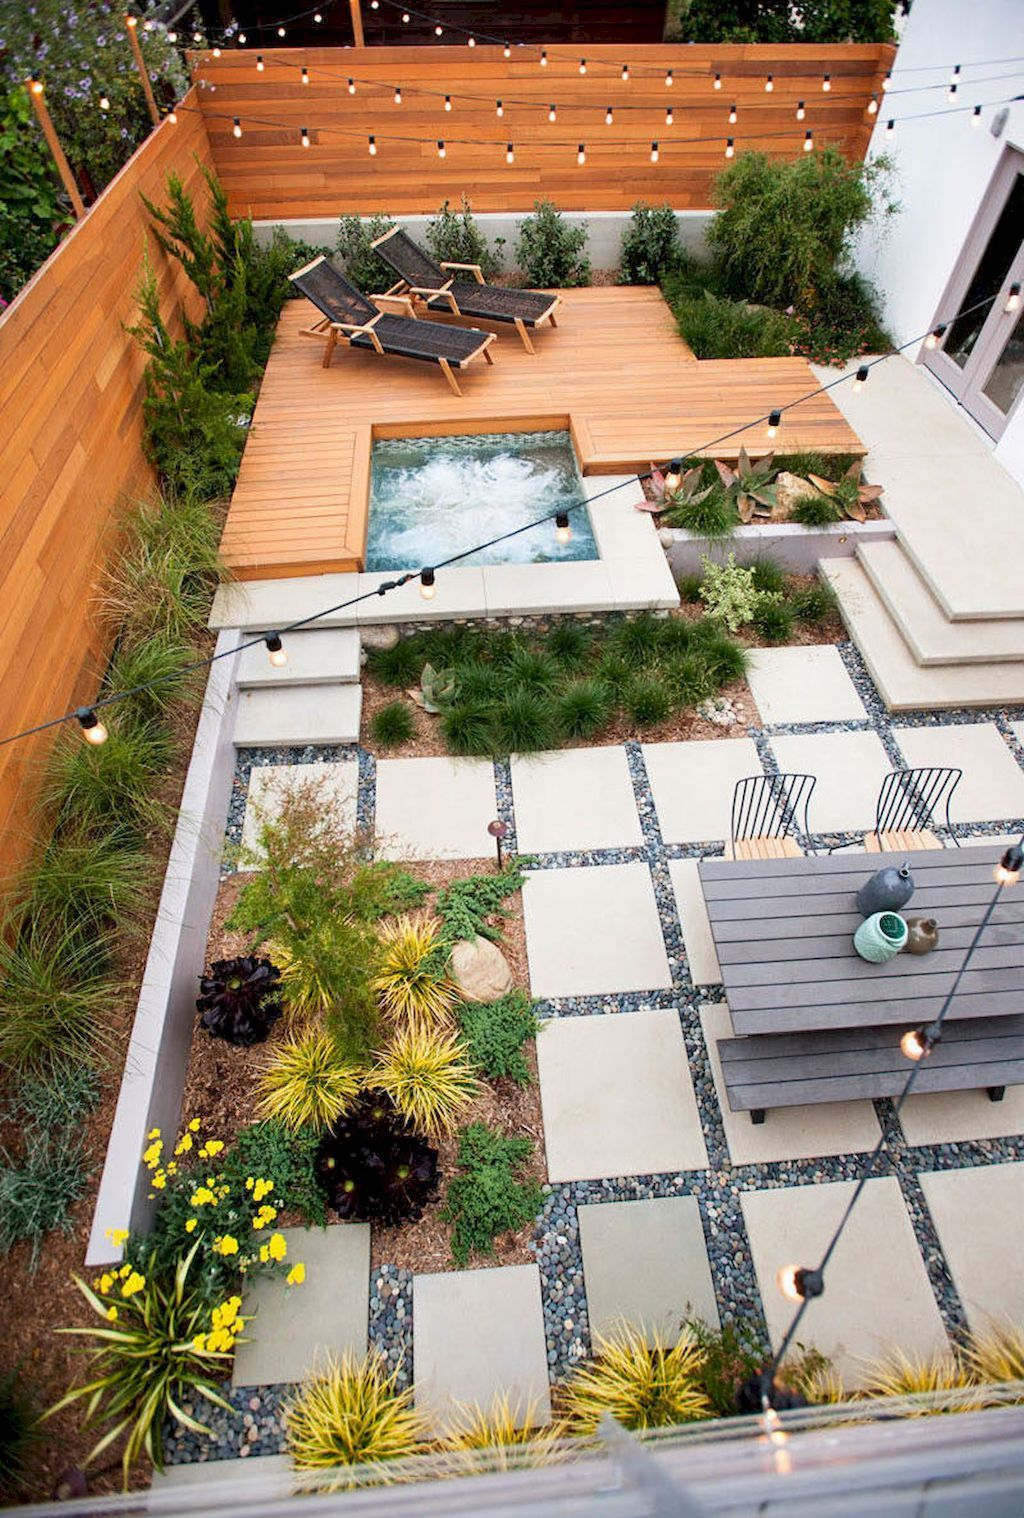 Nice 80 Small Backyard Landscaping Ideas On A Budget Https Homespecially